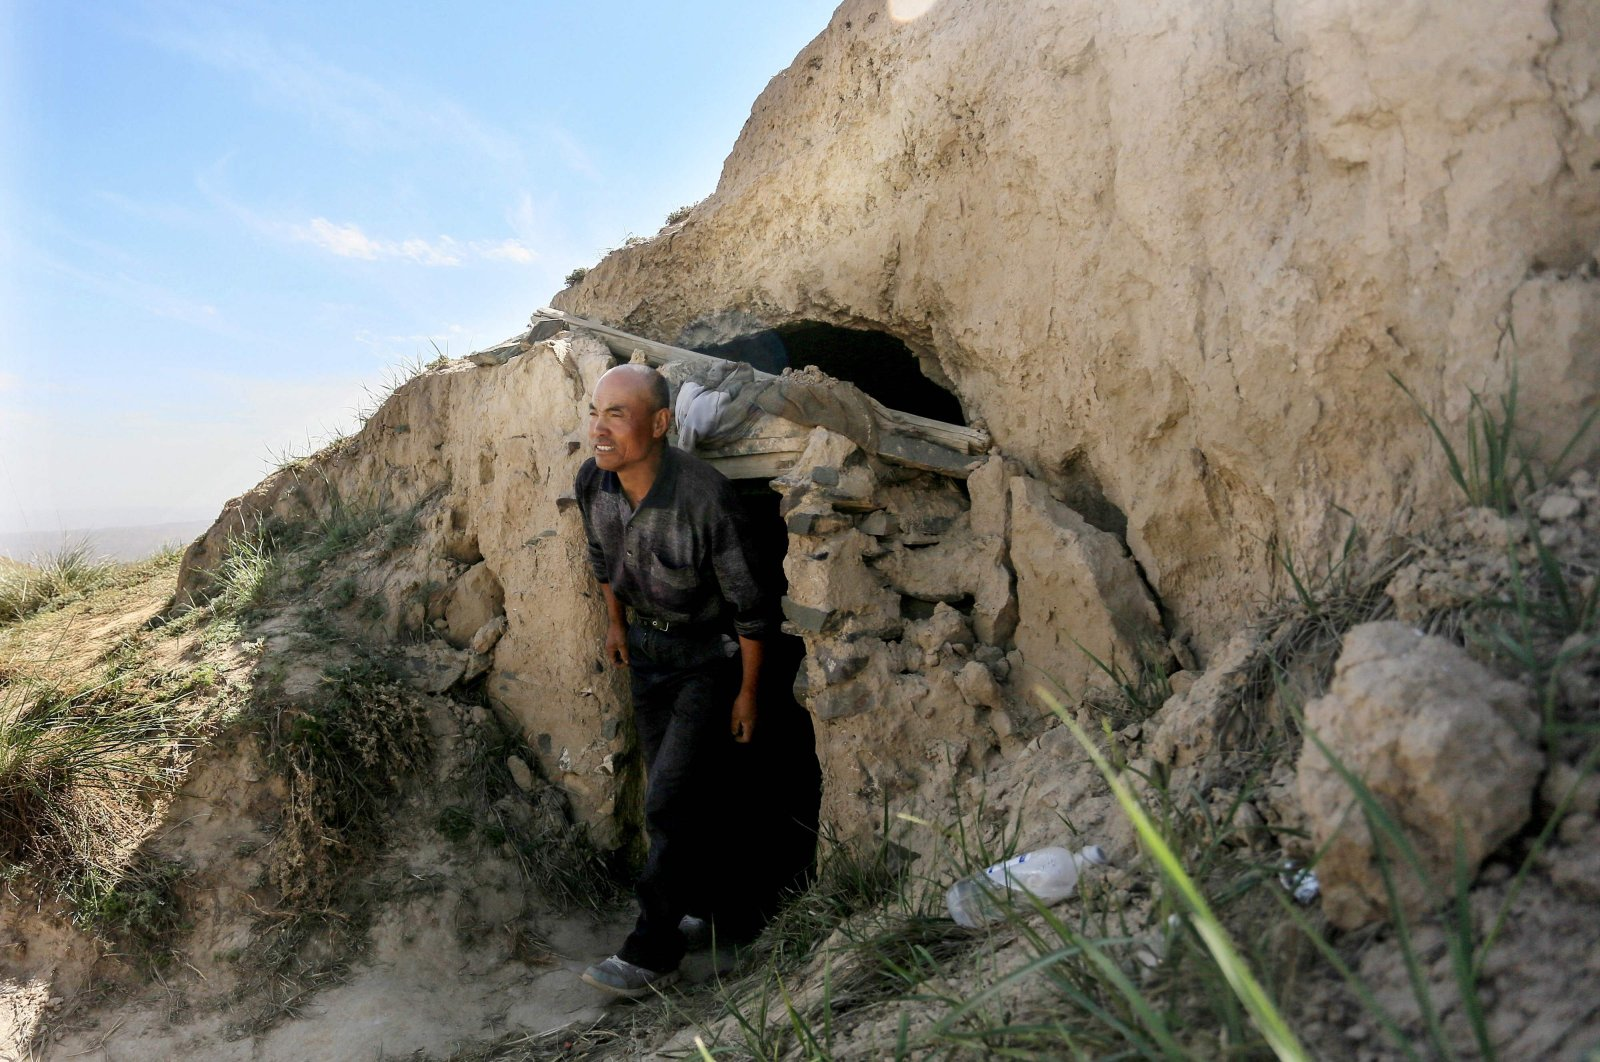 Shepherd Zhu Keming, hailed as a hero in China for rescuing six ultramarathon runners when extreme weather hit the area leaving at least 21 dead, shows the cave-dwelling where he sheltered the stricken athletes near the city of Baiyin, in China's northwestern Gansu province, May 24, 2021. (AFP Photo)